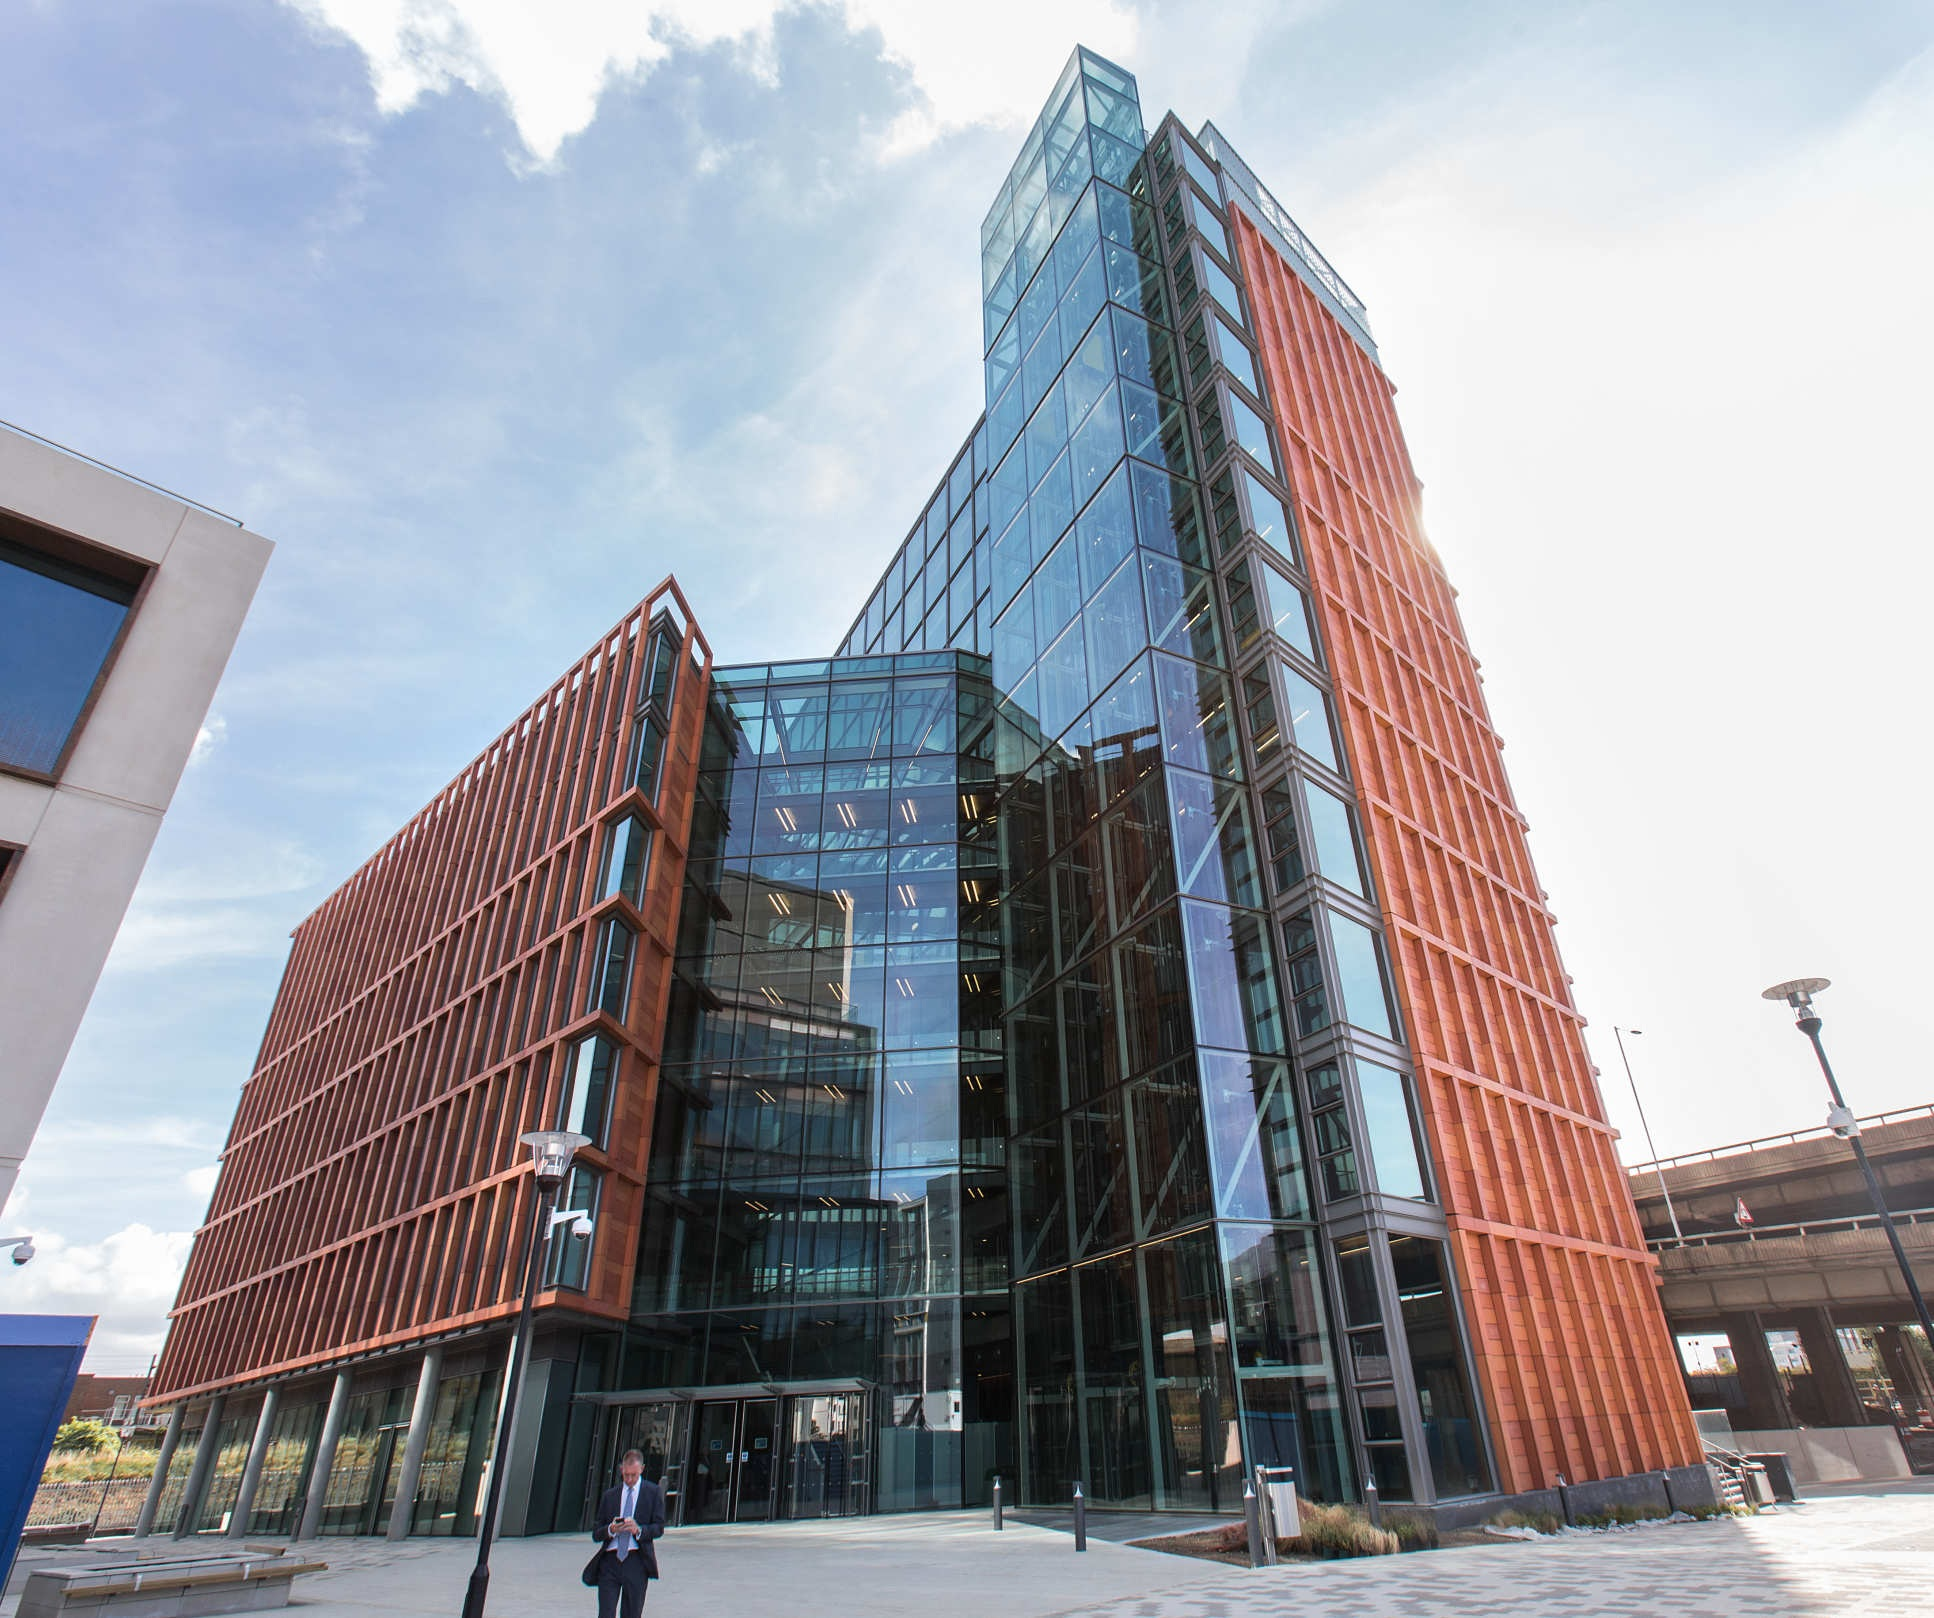 Our HQ at the Imperial College London White City Campus